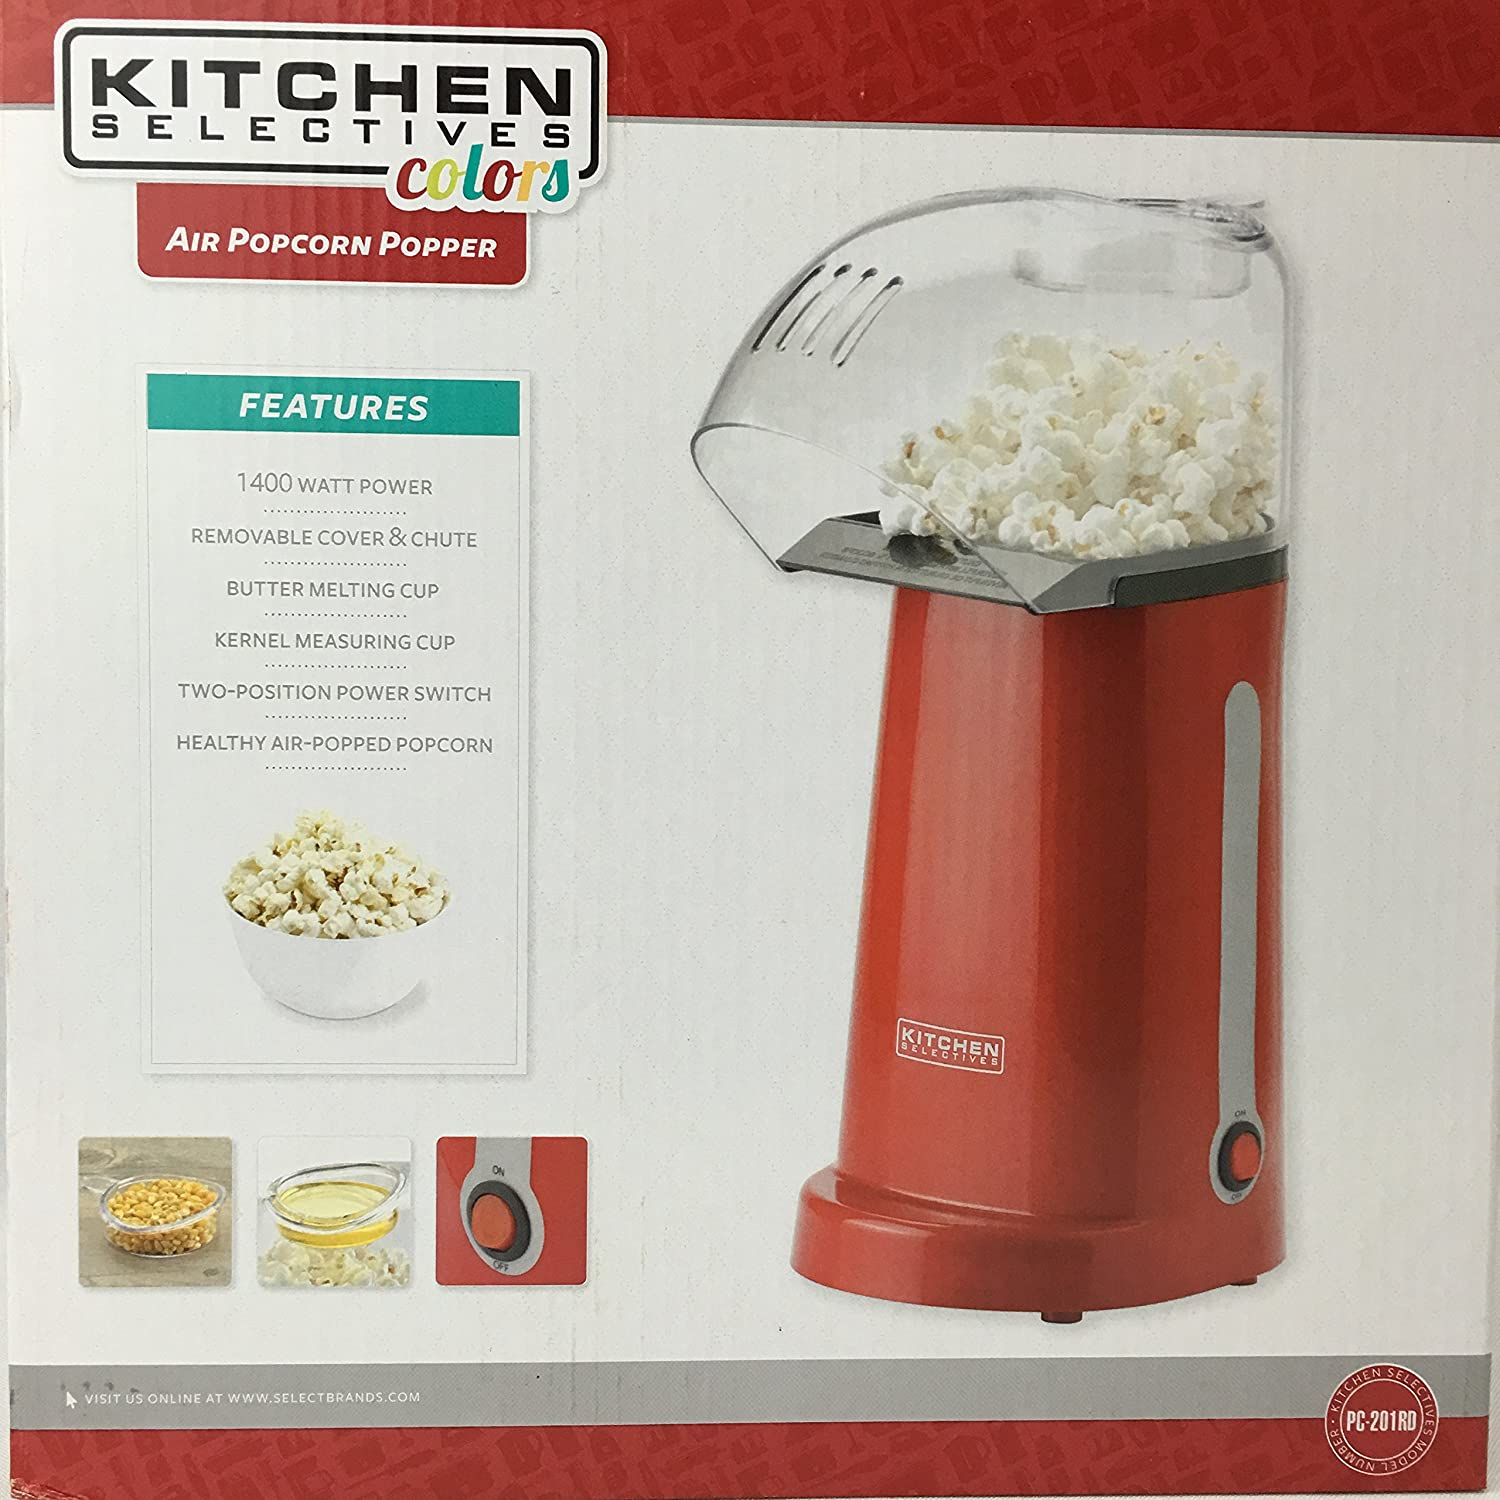 Kitchen Selectives: Kitchen Selectives Air Popcorn Popper Home Garden Dining